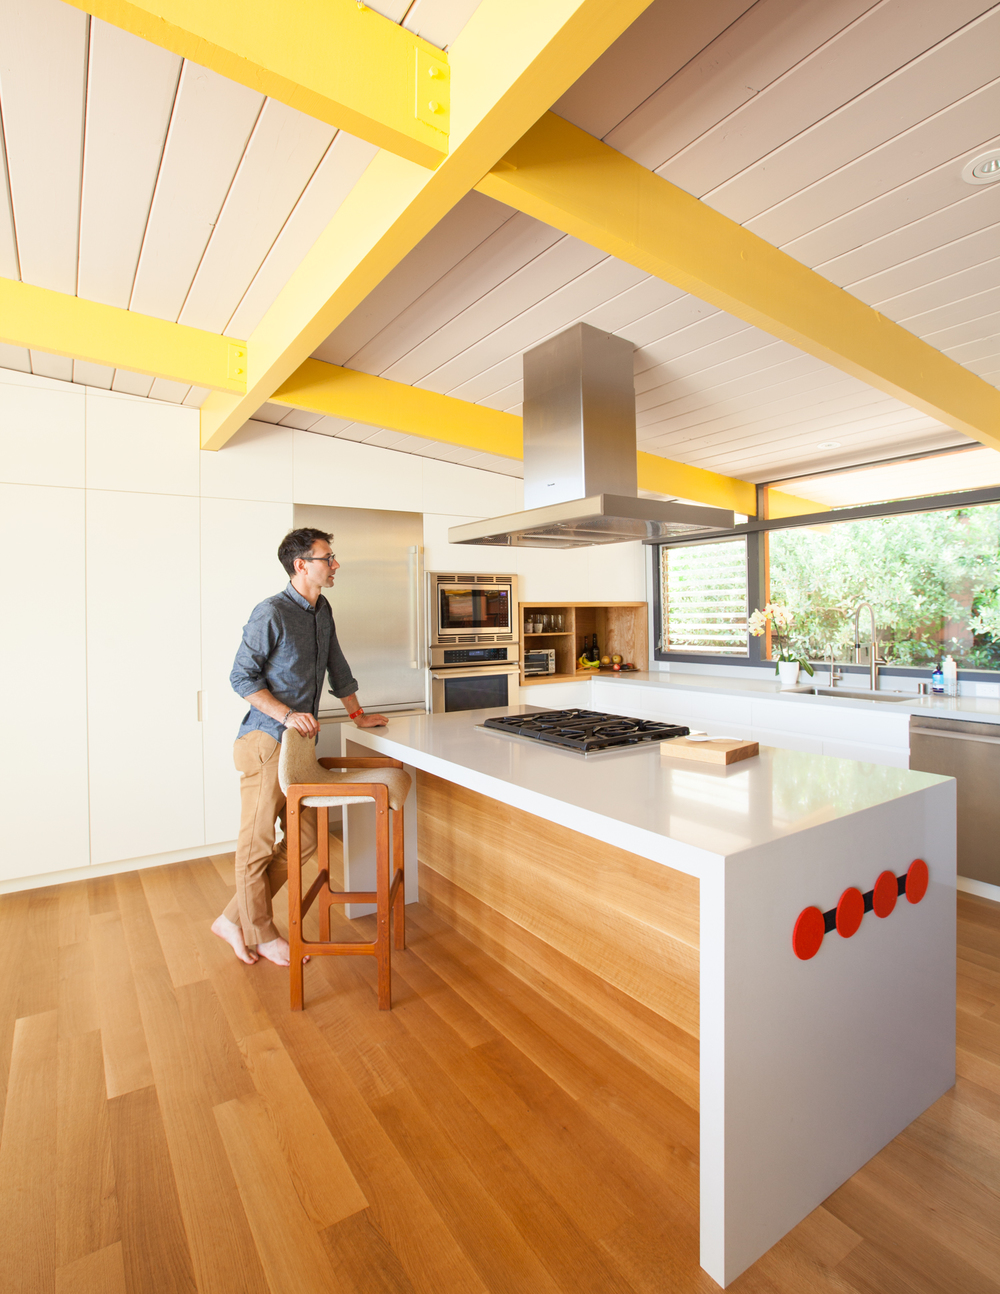 kitchen with bright yellow beams // Sunset House by Sky Lanigan for Medium Plenty